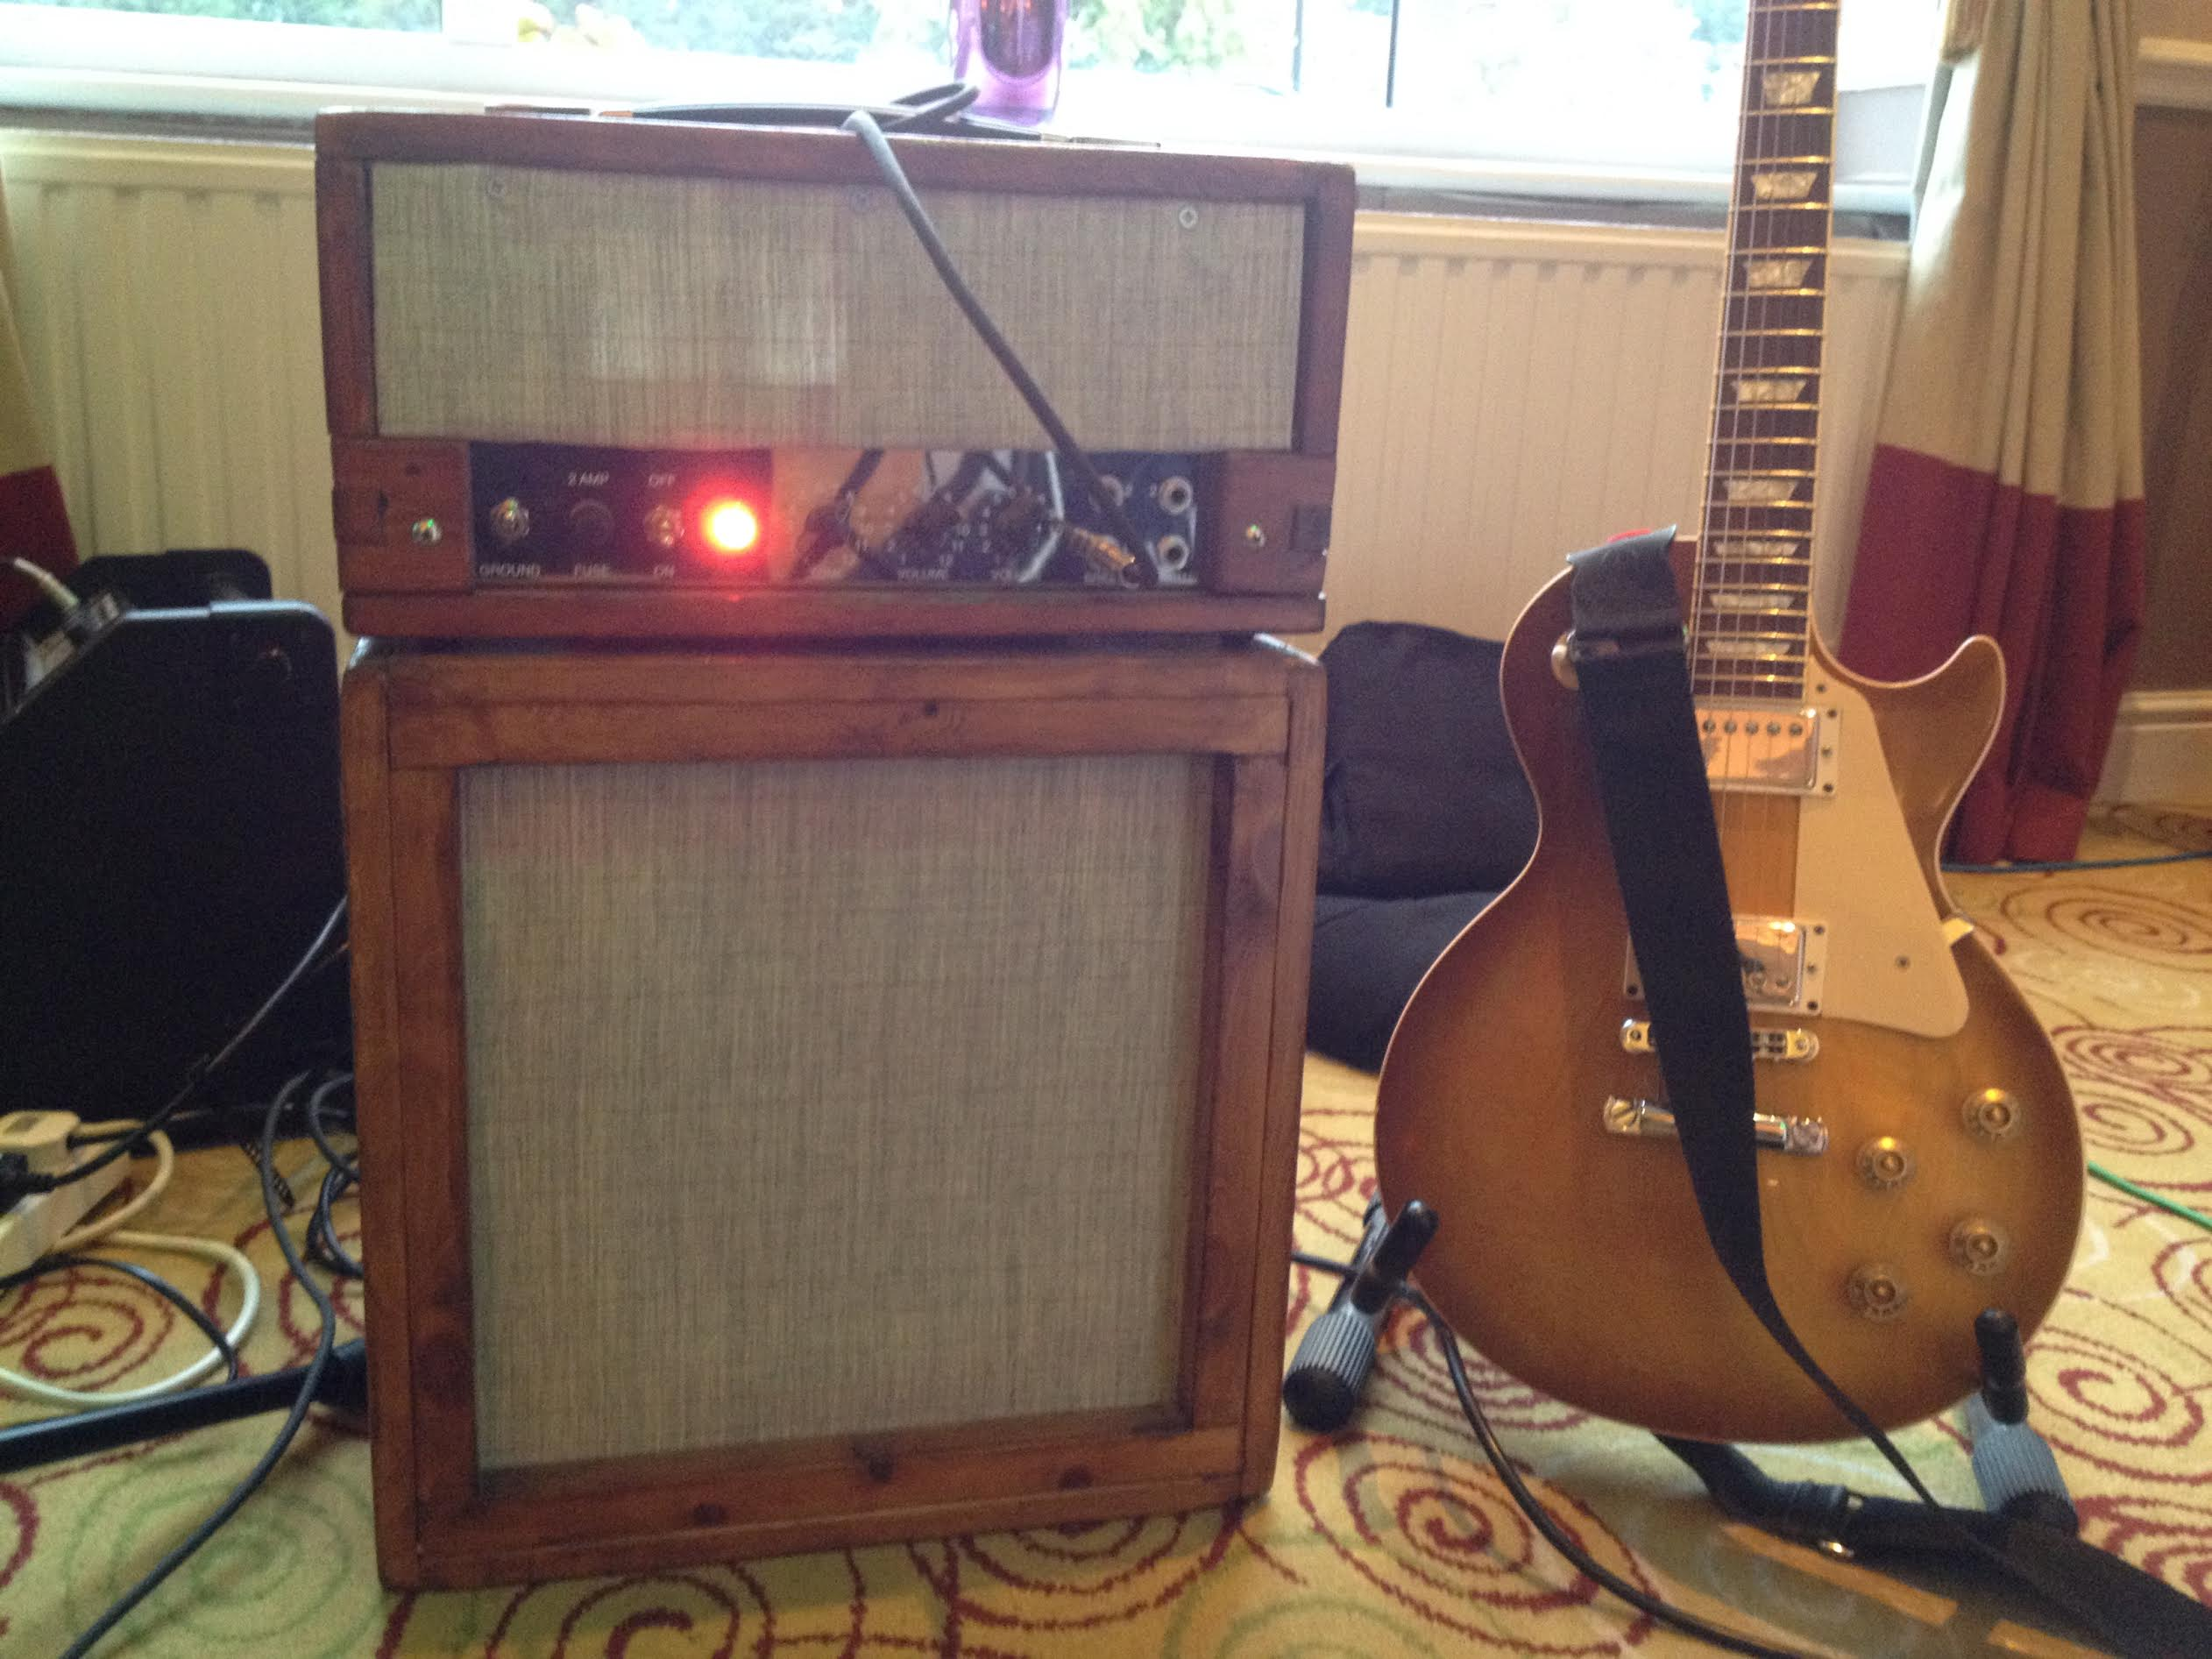 Welcome To Doityourself How Make A Circuit Board Guitar Pick Do It Using With Les Paul My Homemade Tele And 1937 Cromwell Archtop Jimmy B Buy This Tweed 5e3 Vacuum Tube Amp Kit